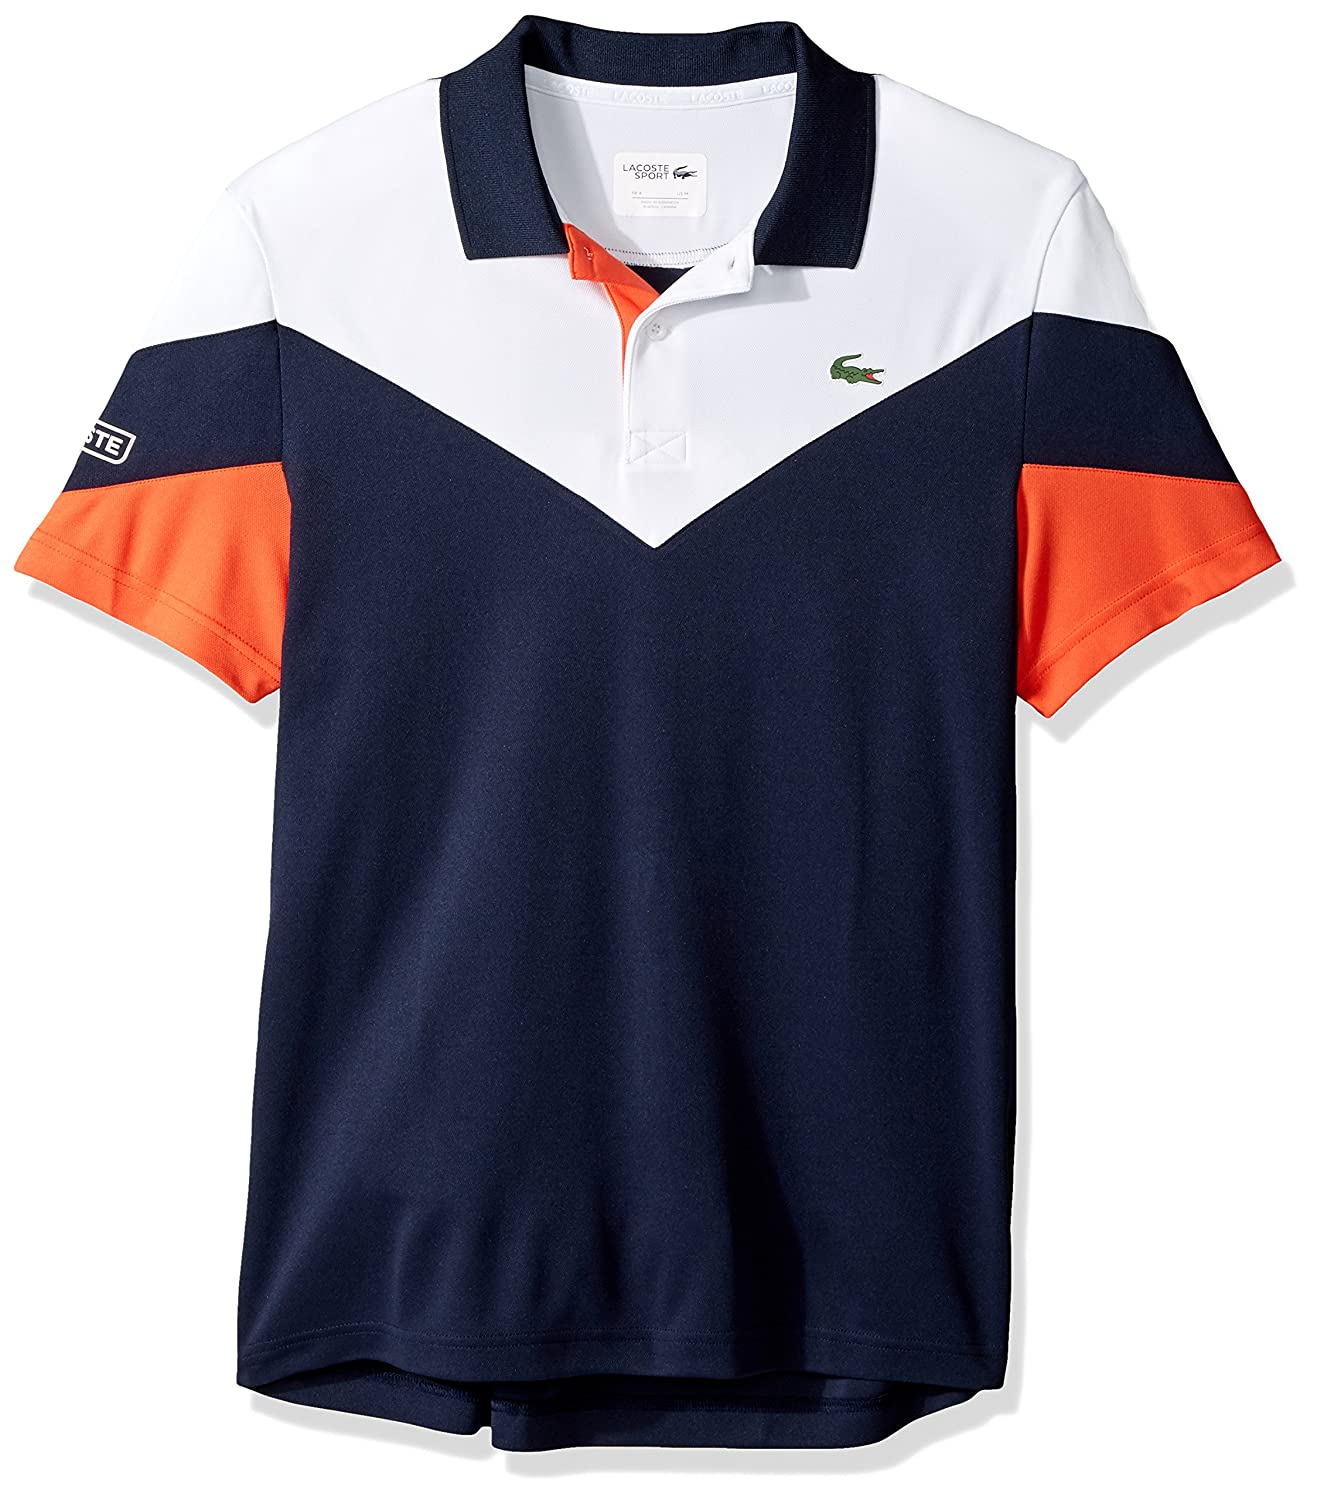 56923b01 LACOSTE Men's Tennis Short Sleeve Ultra Dry Polo, size 2-9 (XS-4XL), 5  color options